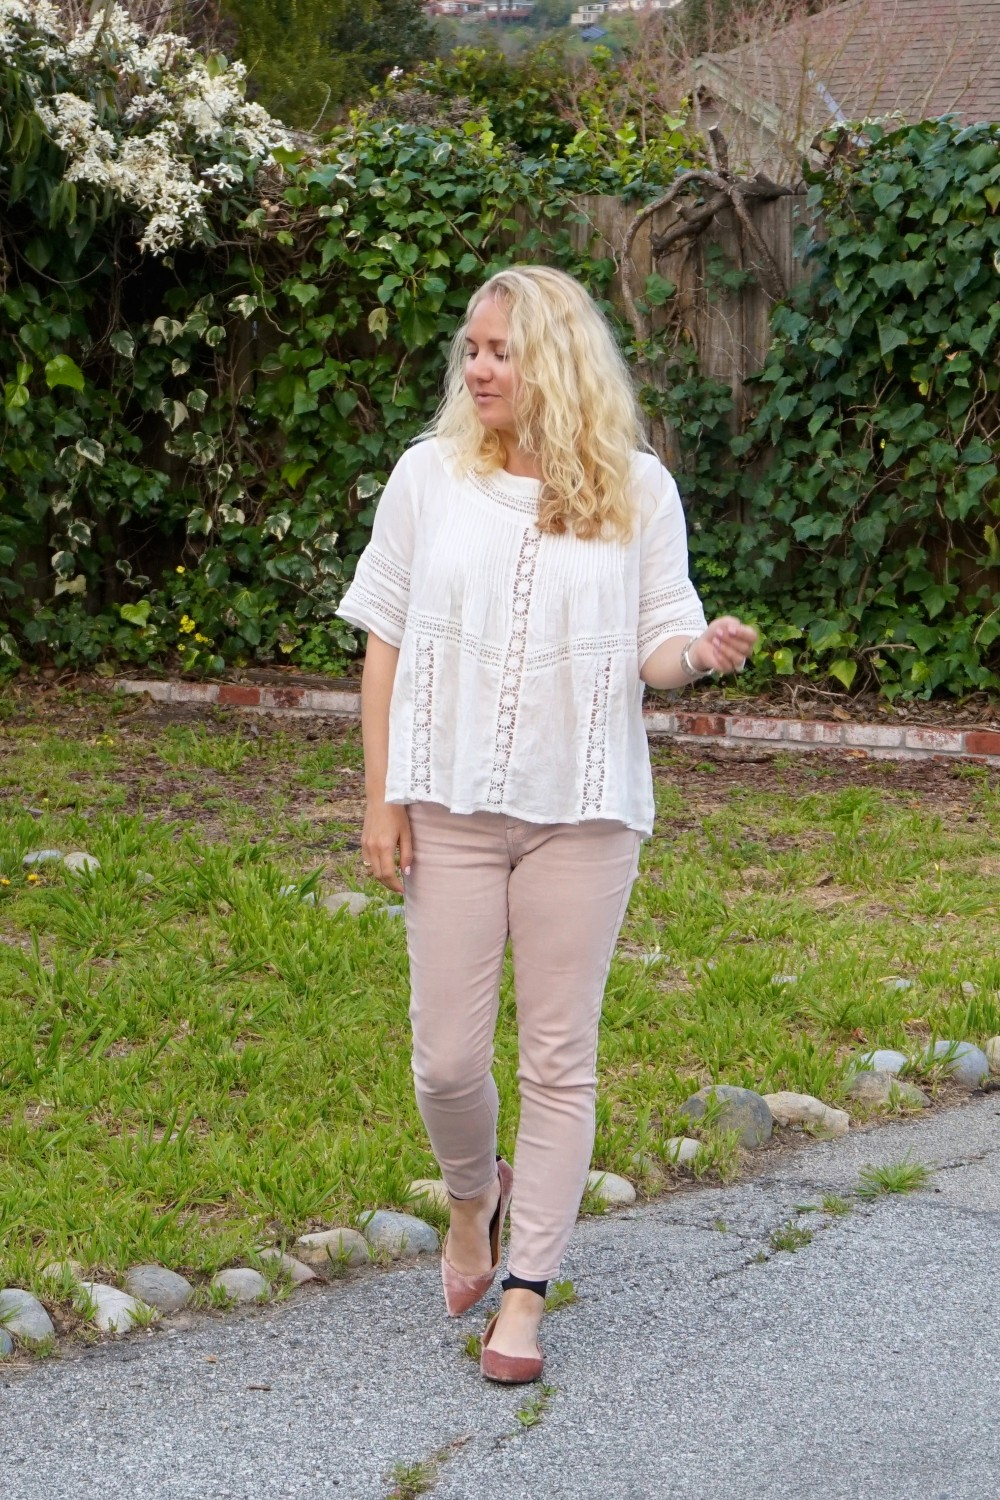 Two Ways to Wear Pale Pink Pants-Target Style-Mossimo Pants-Oufit Inspiration-Spring Style-Have Need Want 7